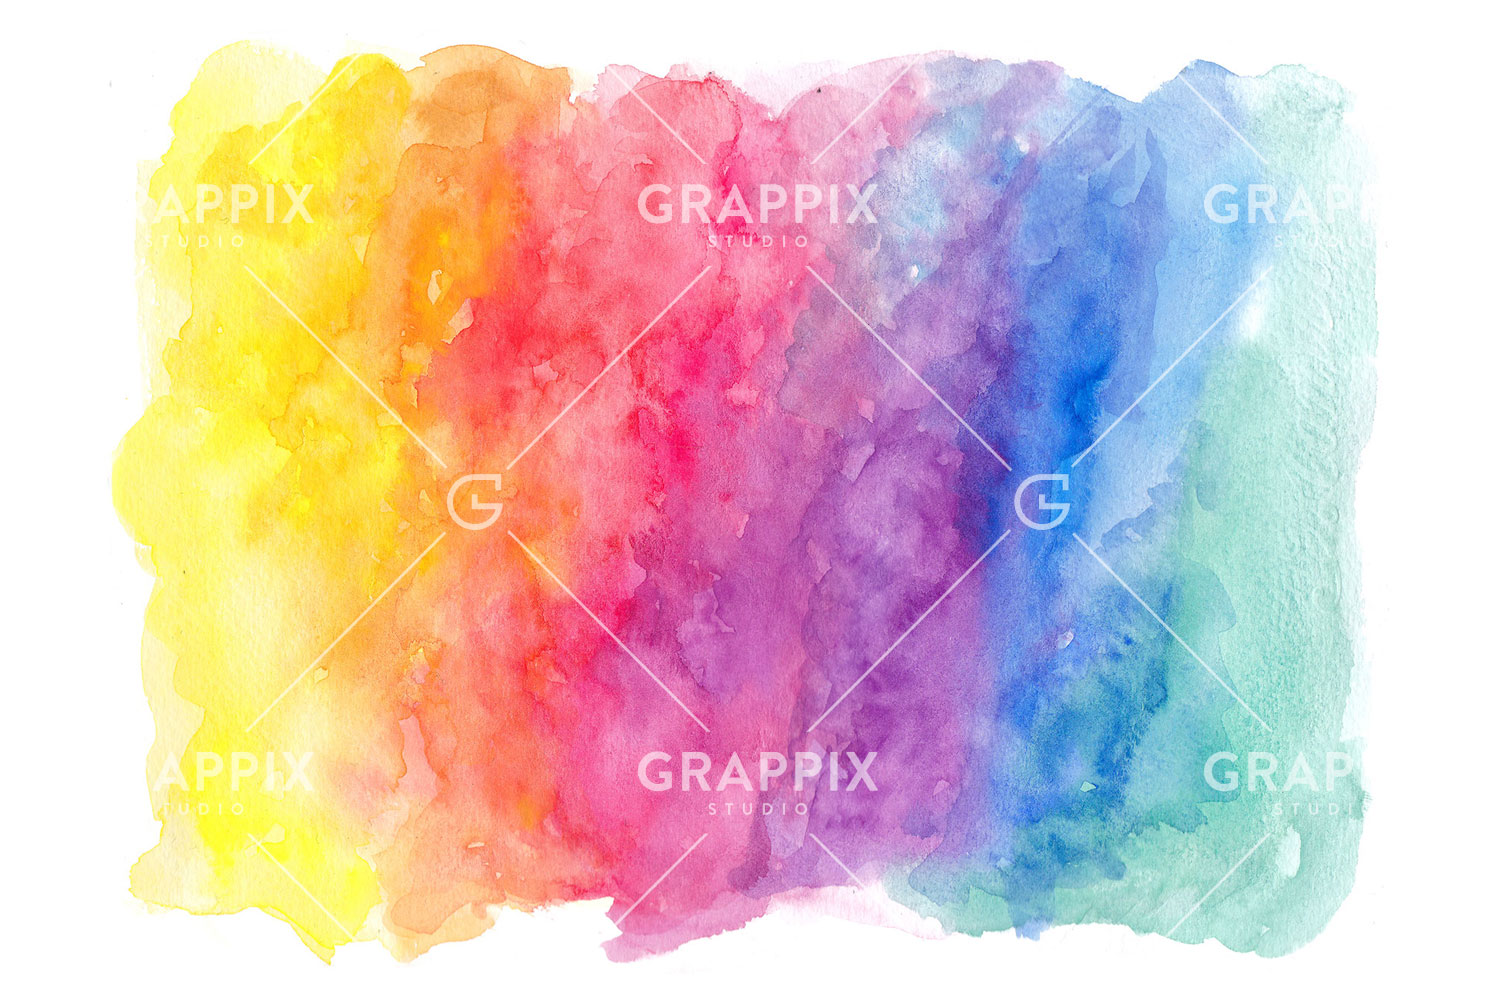 14 Abstract Colorful Watercolor Backgrounds example image 6